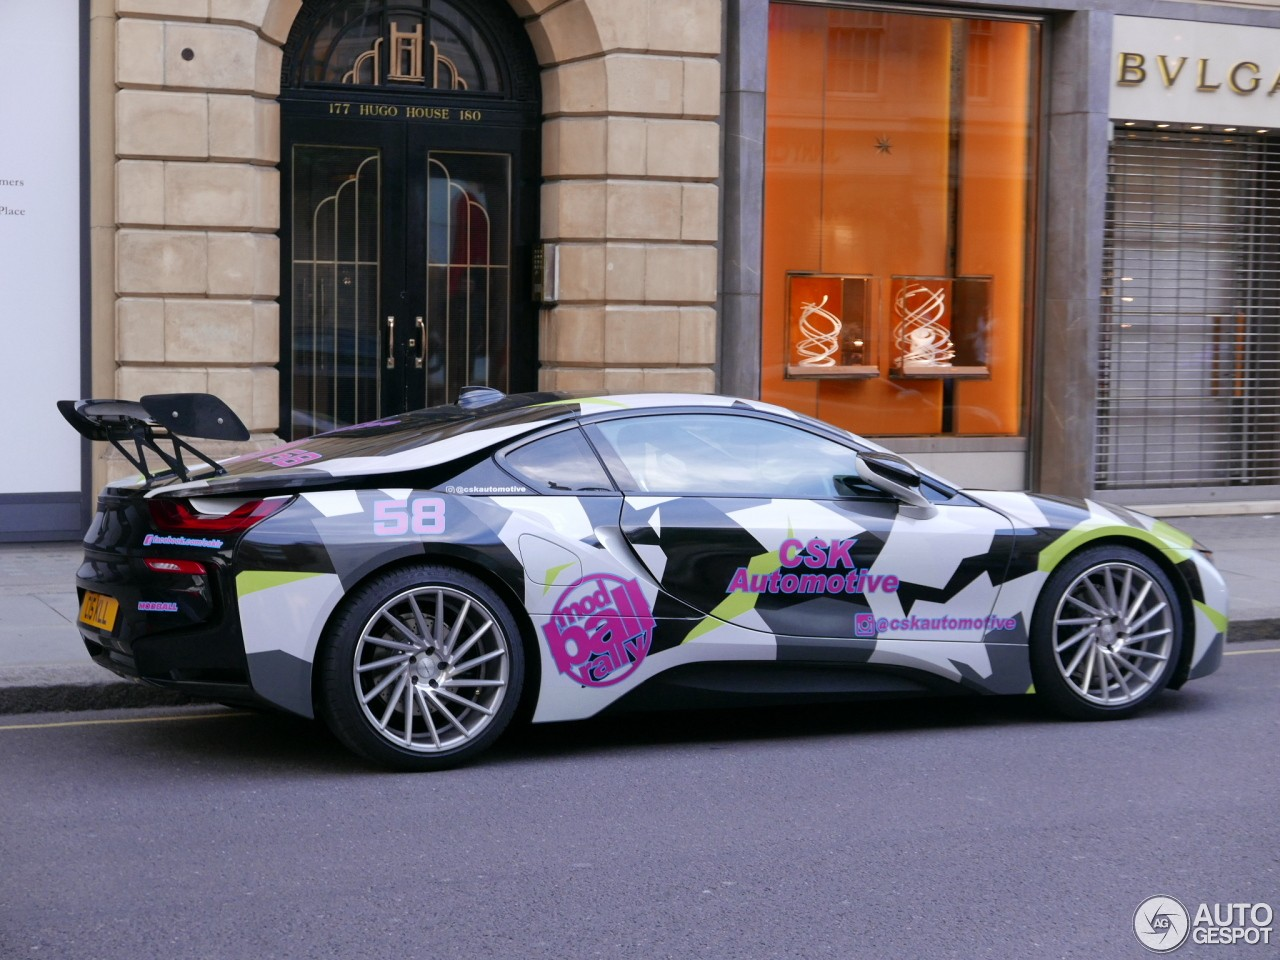 Bmw I8 With Monstrous Rear Wing Stands Out In London Has Wacky Camo